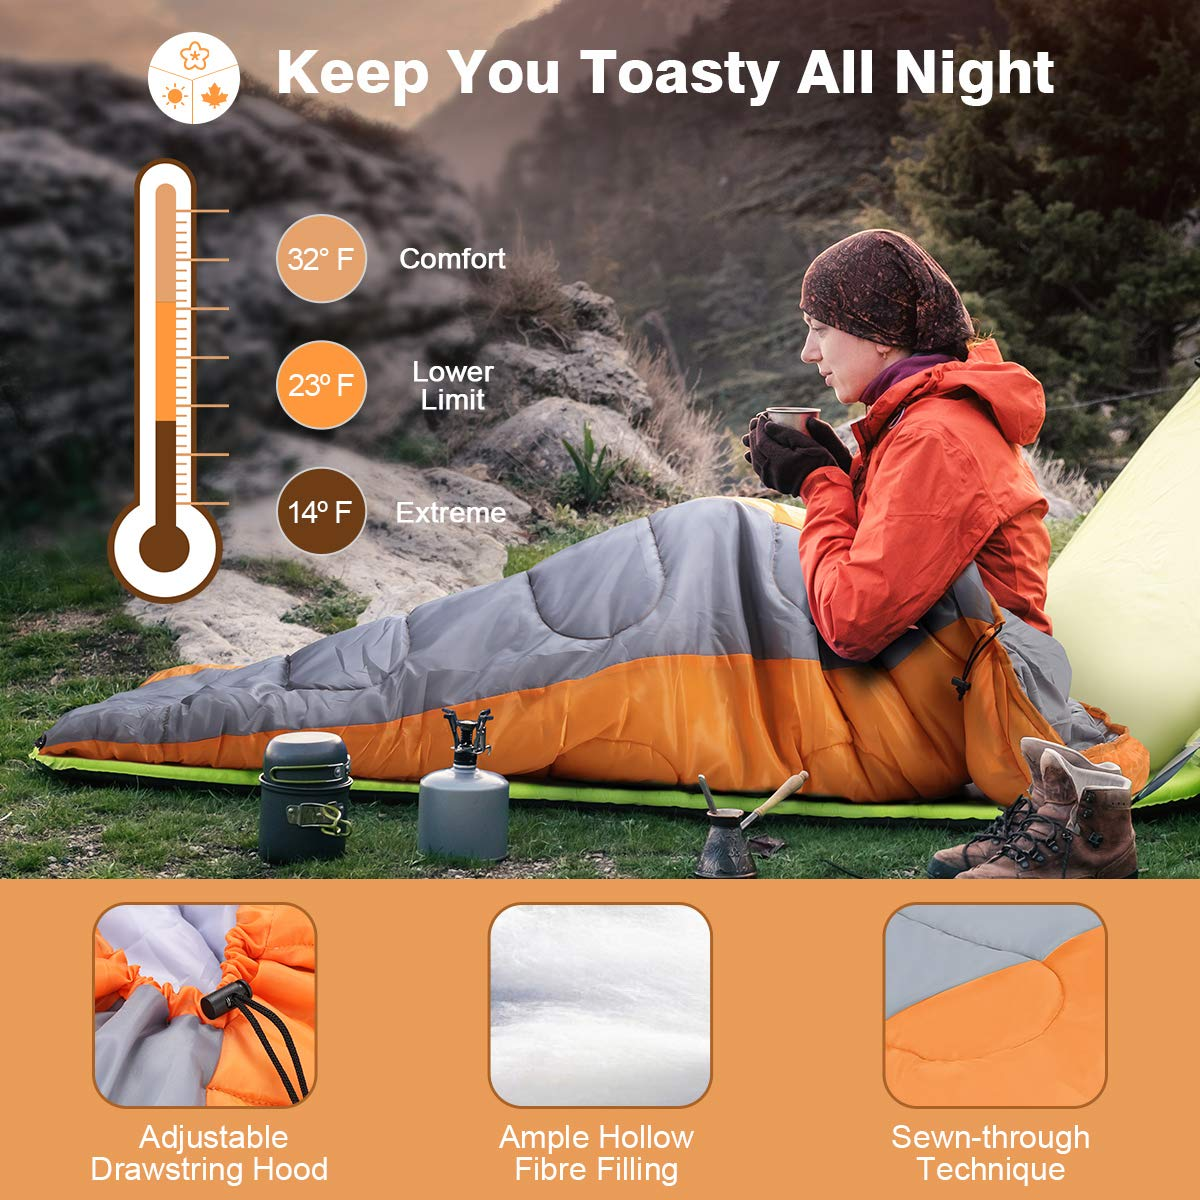 LANGRIA Envelope Sleeping Bag with Compression Sack Compact /& Lightweight/Sleeping Bags for 3 Season Indoor//Outdoor Sleepover Camping Backpacking Hiking Festival